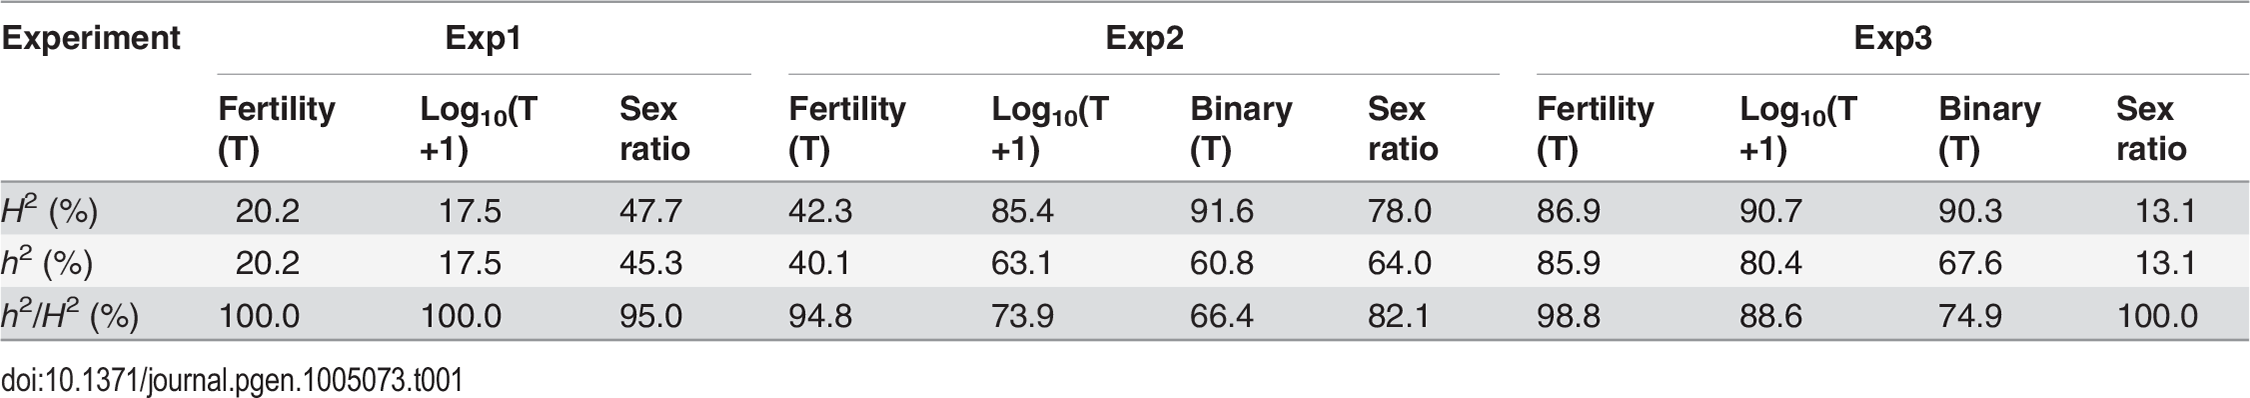 Genetic components of QTL mappings: Genetic variance (<i>H</i><sup>2</sup>) and additive genetic variance (<i>h</i><sup>2</sup>) in the three QTL experiments.